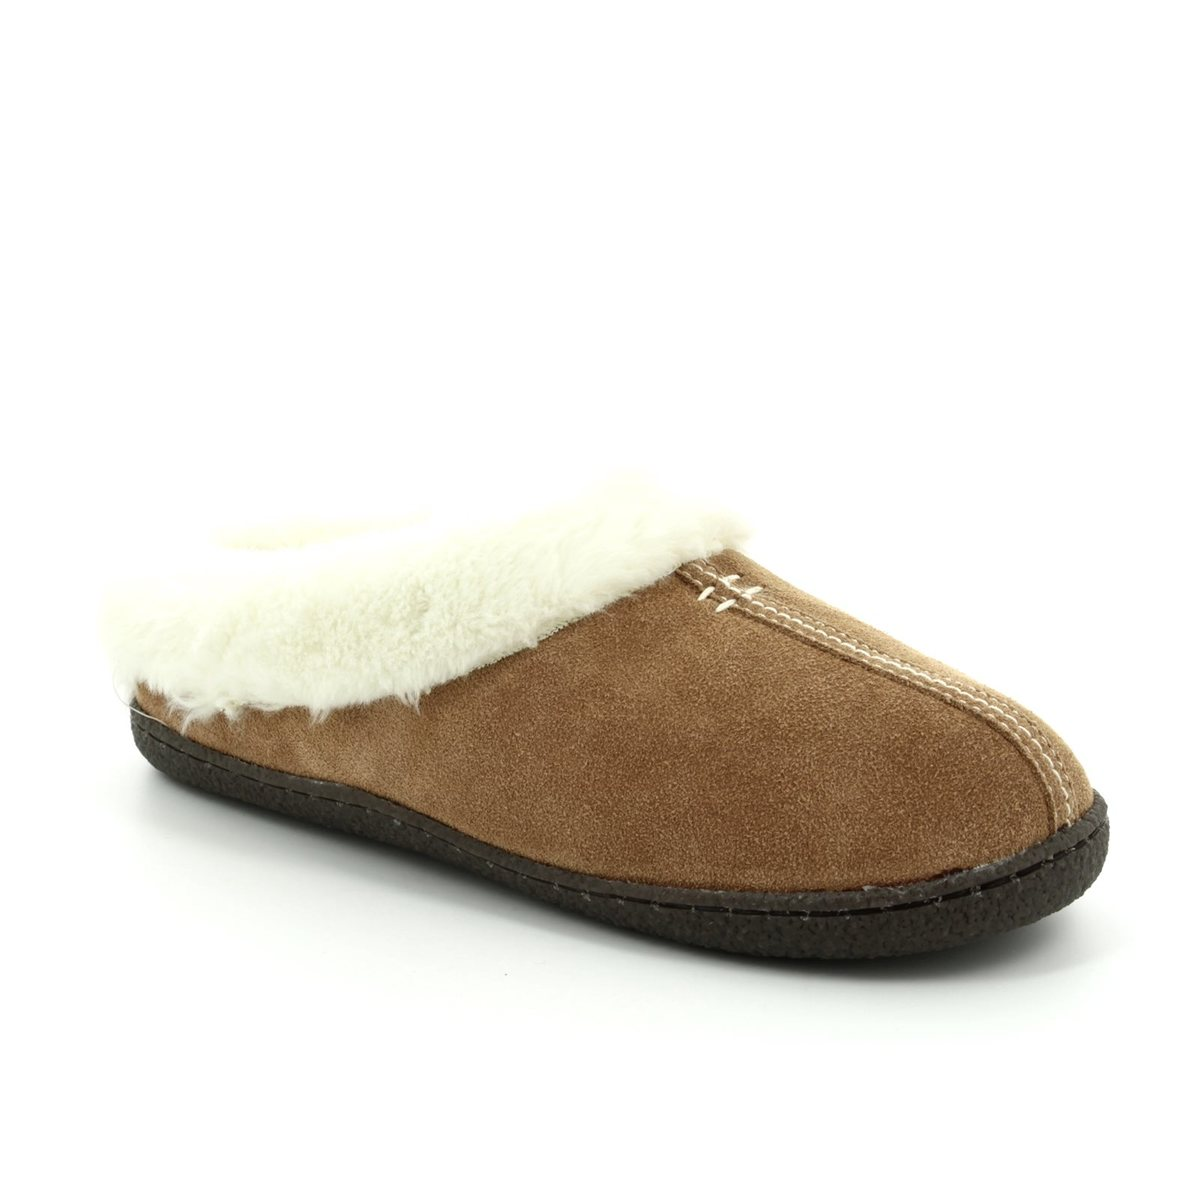 96440d57 Clarks Slippers - Tan suede - 3043/04D HOME CLASSIC